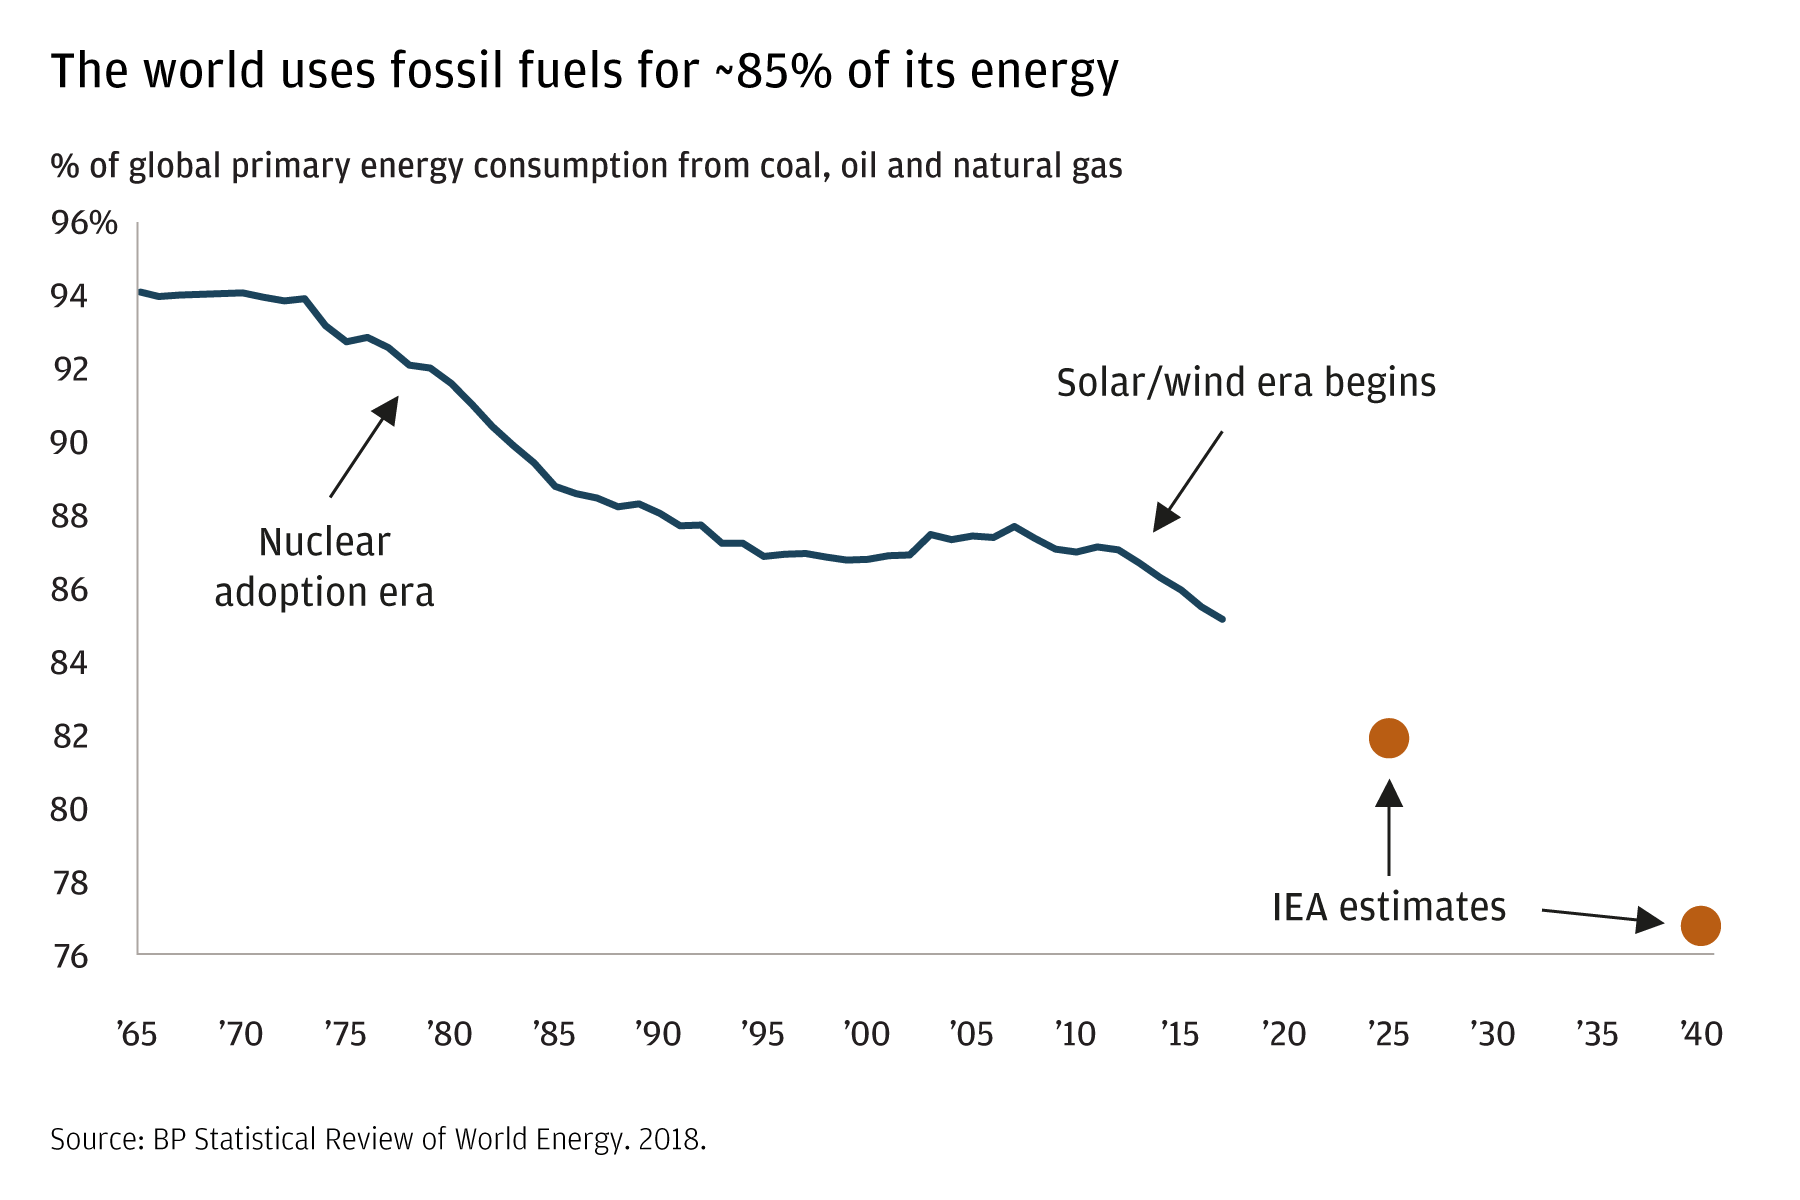 This line chart shows the decline in fossil fuel usage between 1965 and today, and includes estimates of usage in 2025 and 2040. Though fossil fuels accounted for 94 percent of global energy production in 1965, nuclear, solar, and wind power have lowered fossil fuel usage to about 85 percent of energy production today. By 2020, the Energy Information Administration estimates fossil fuel usage will fall to 82 percent; and to around 76 percent by 2040.